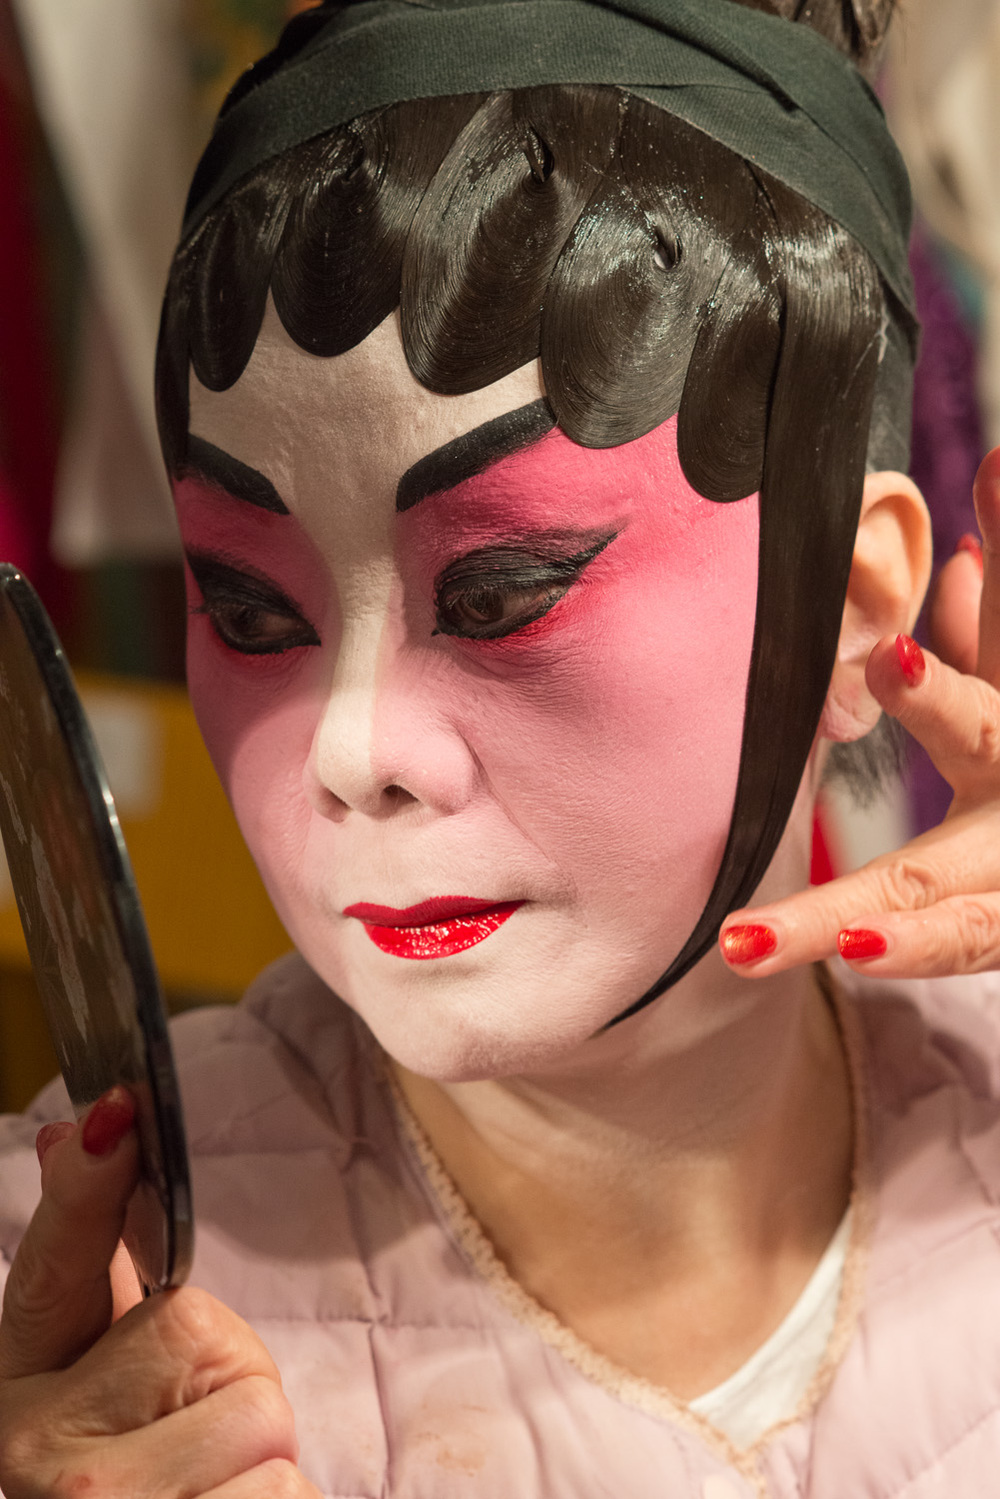 201402041735DSC_6362-Edit-Cantonese Opera Make up.jpg